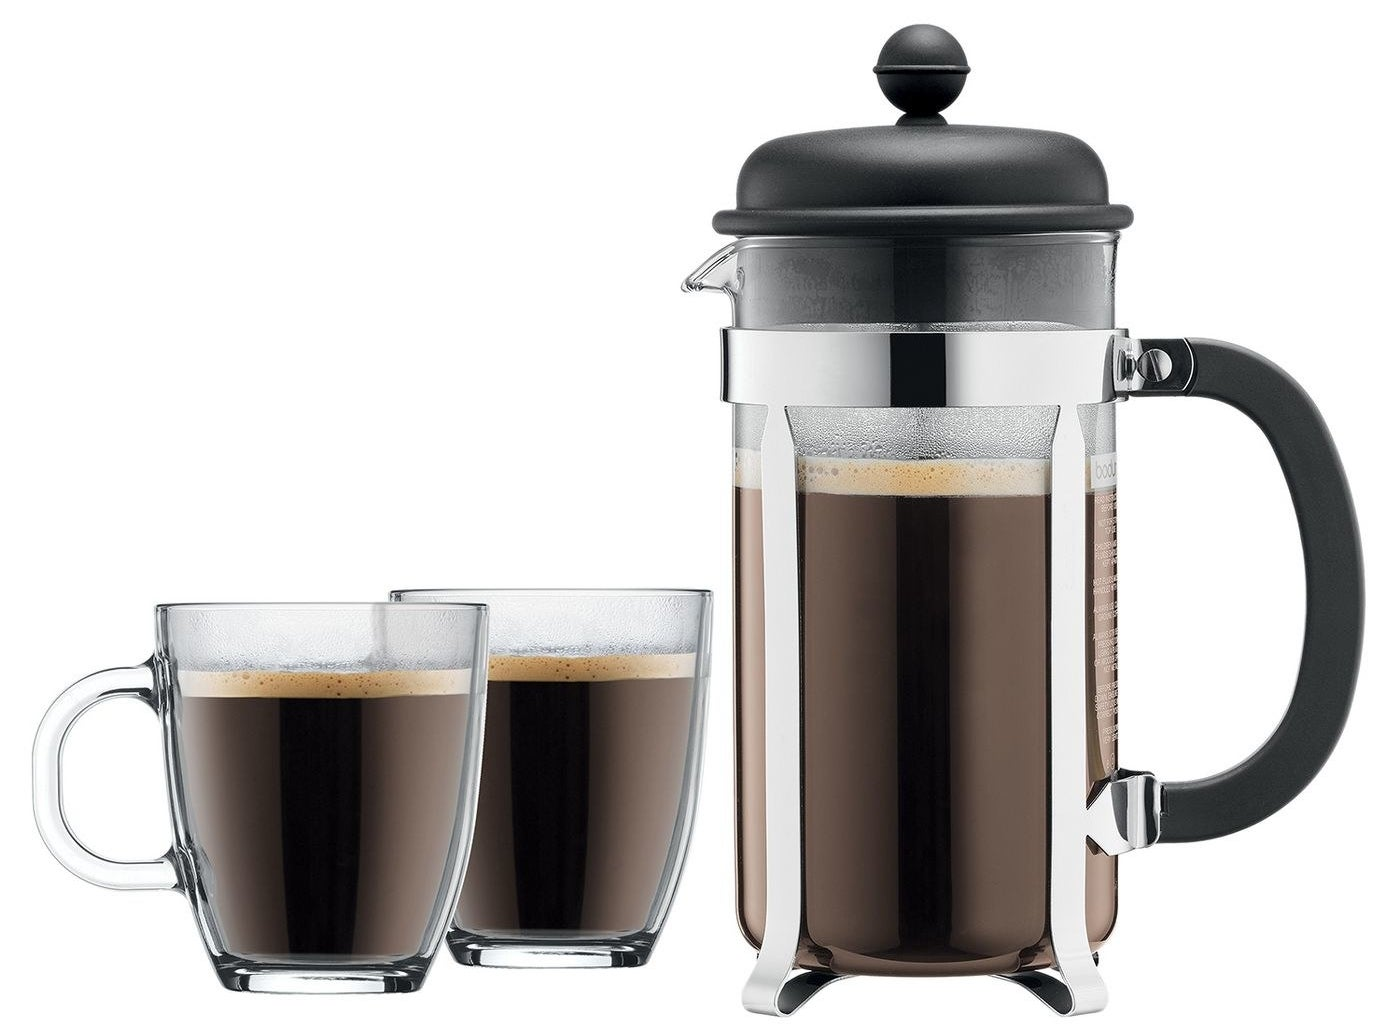 A French press coffee maker and two glass mugs